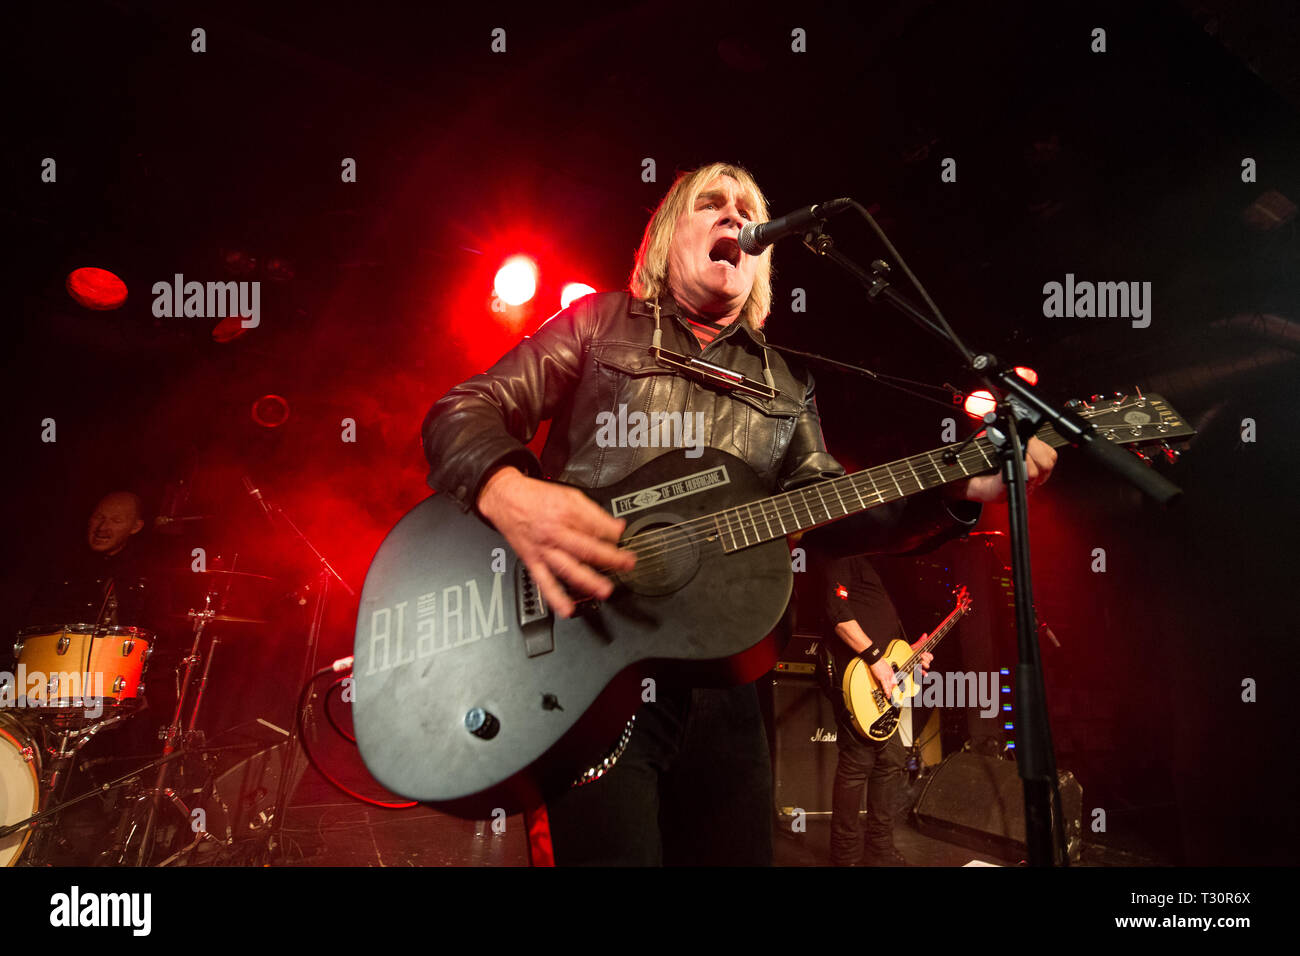 Norway, Oslo - April 4, 2019. The Welsh rock band The Alarm performs live concert at John Dee in Oslo. Here vocalist and guitarist Mike Peters is seen live on stage. (Photo credit: Gonzales Photo - Per-Otto Oppi). Credit: Gonzales Photo/Alamy Live News - Stock Image